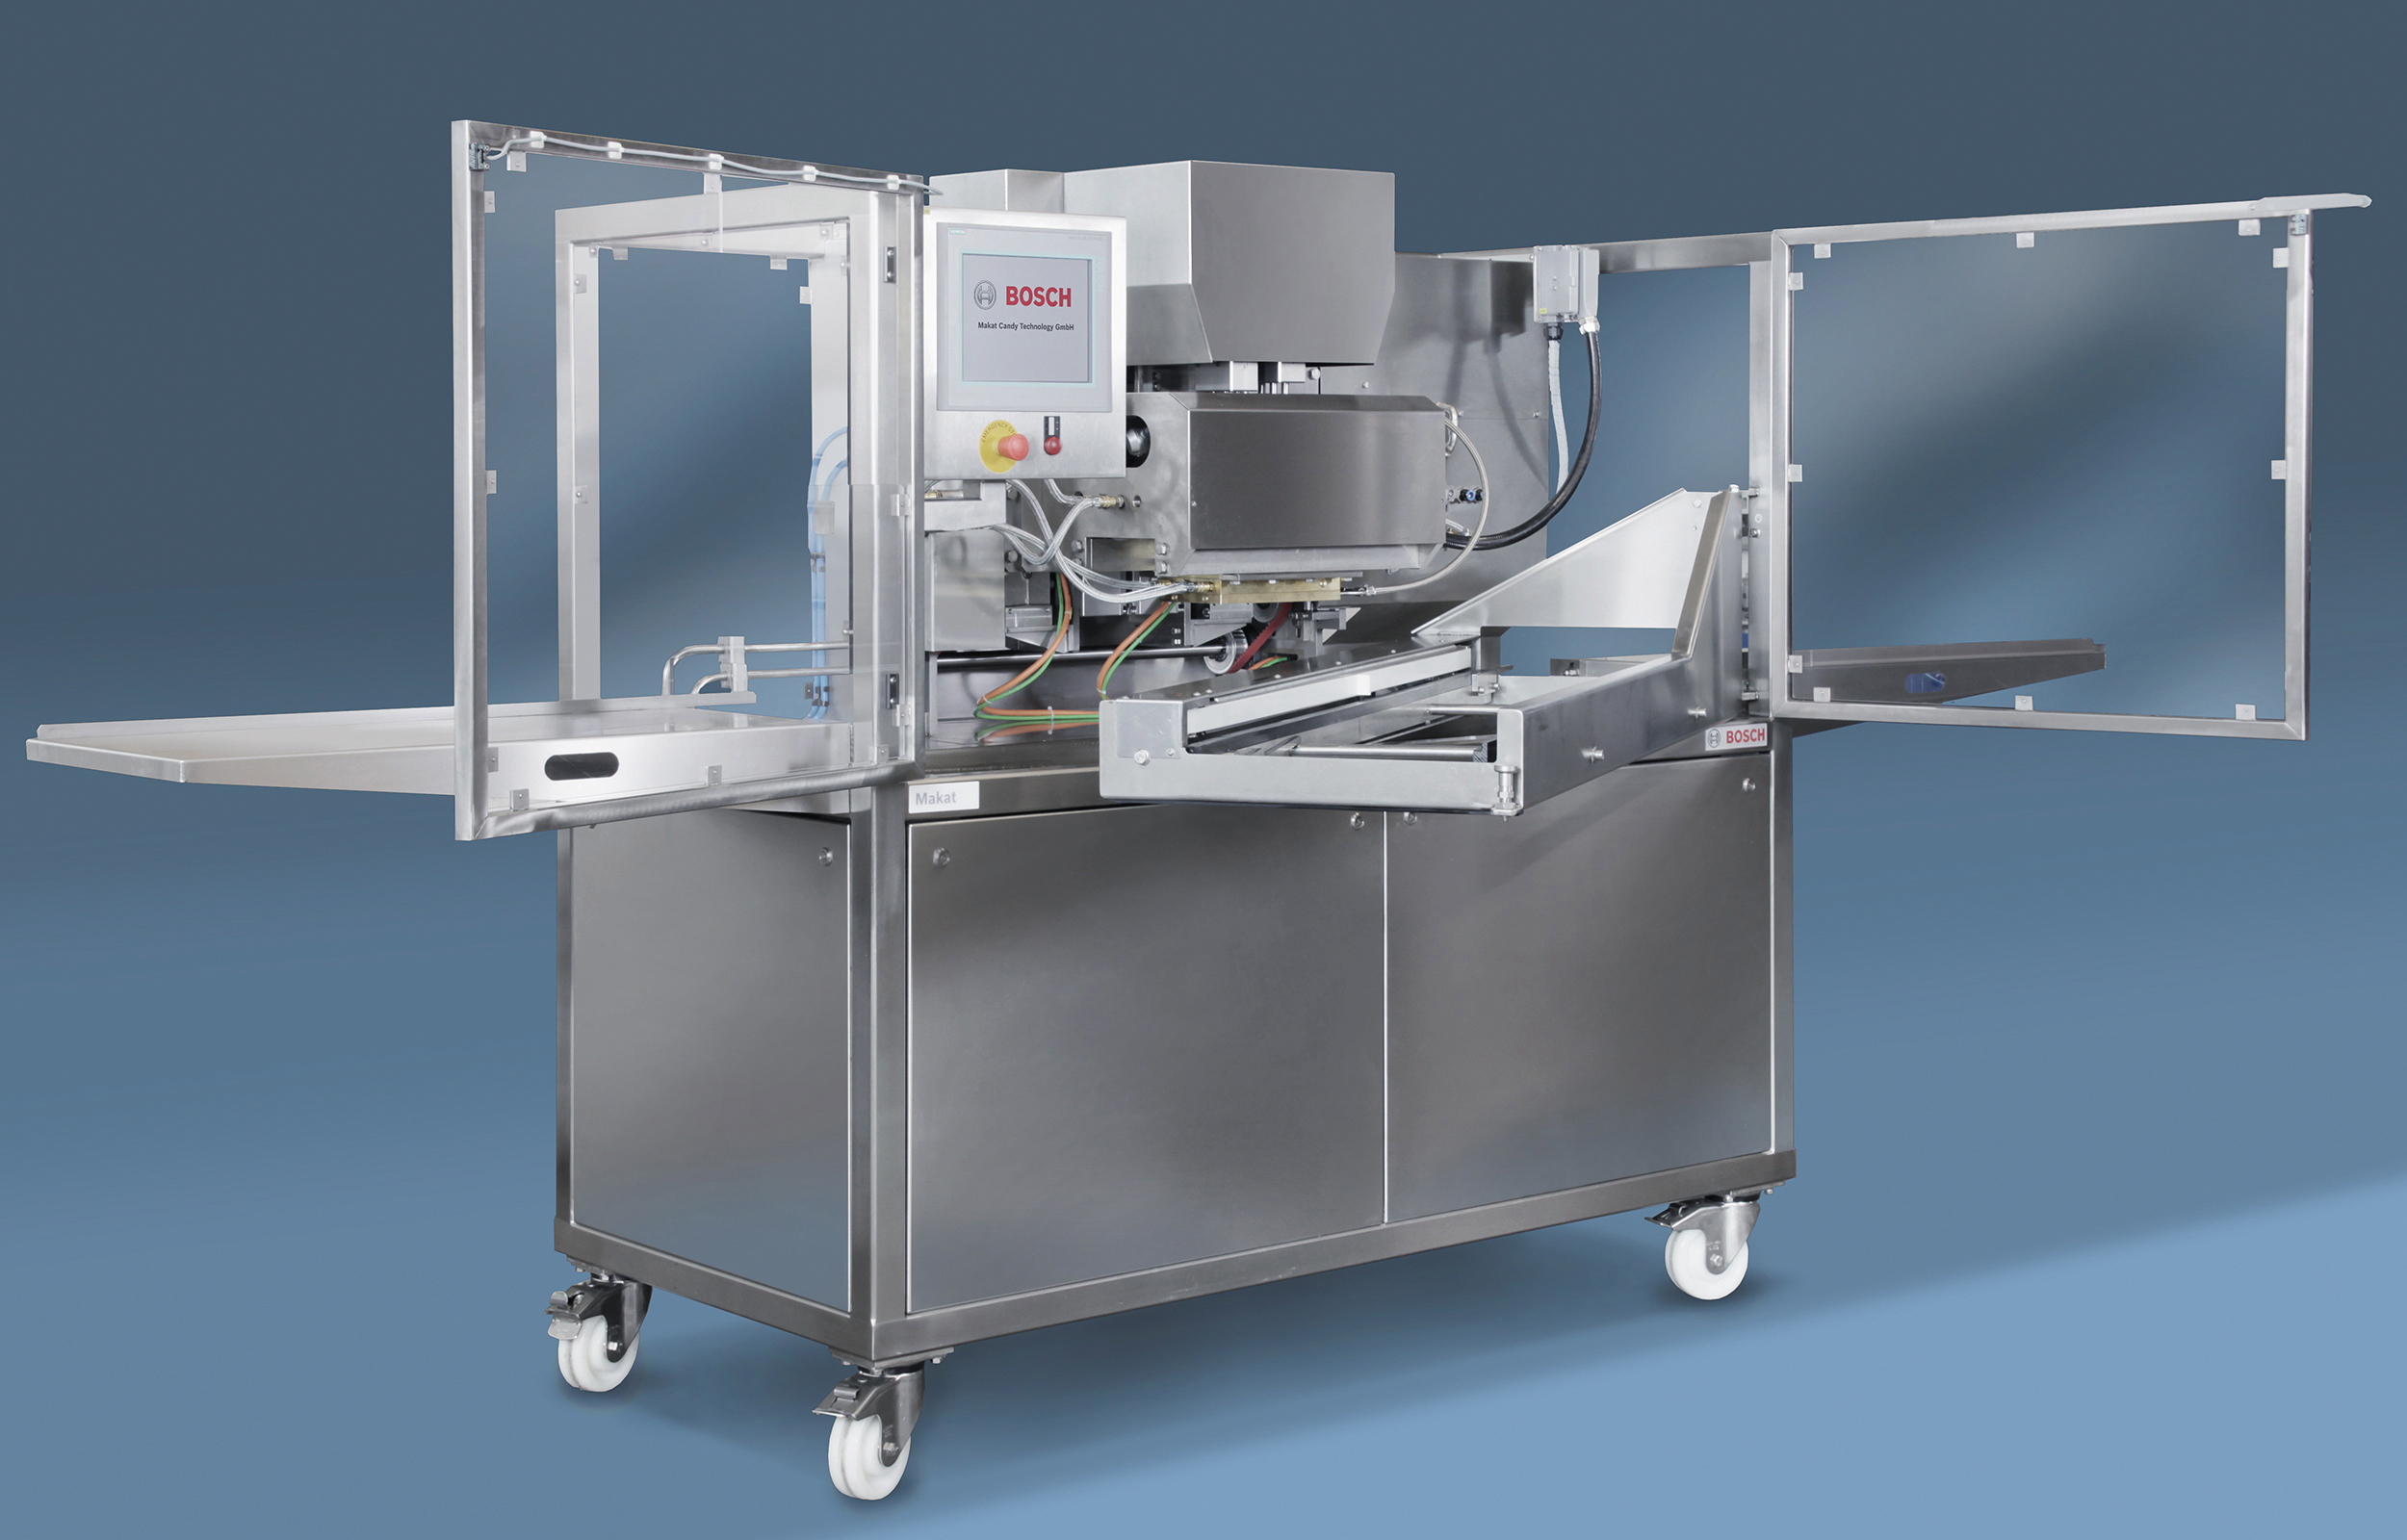 Bosch's GML03 lab depositor shows complete on-site testing capabilities